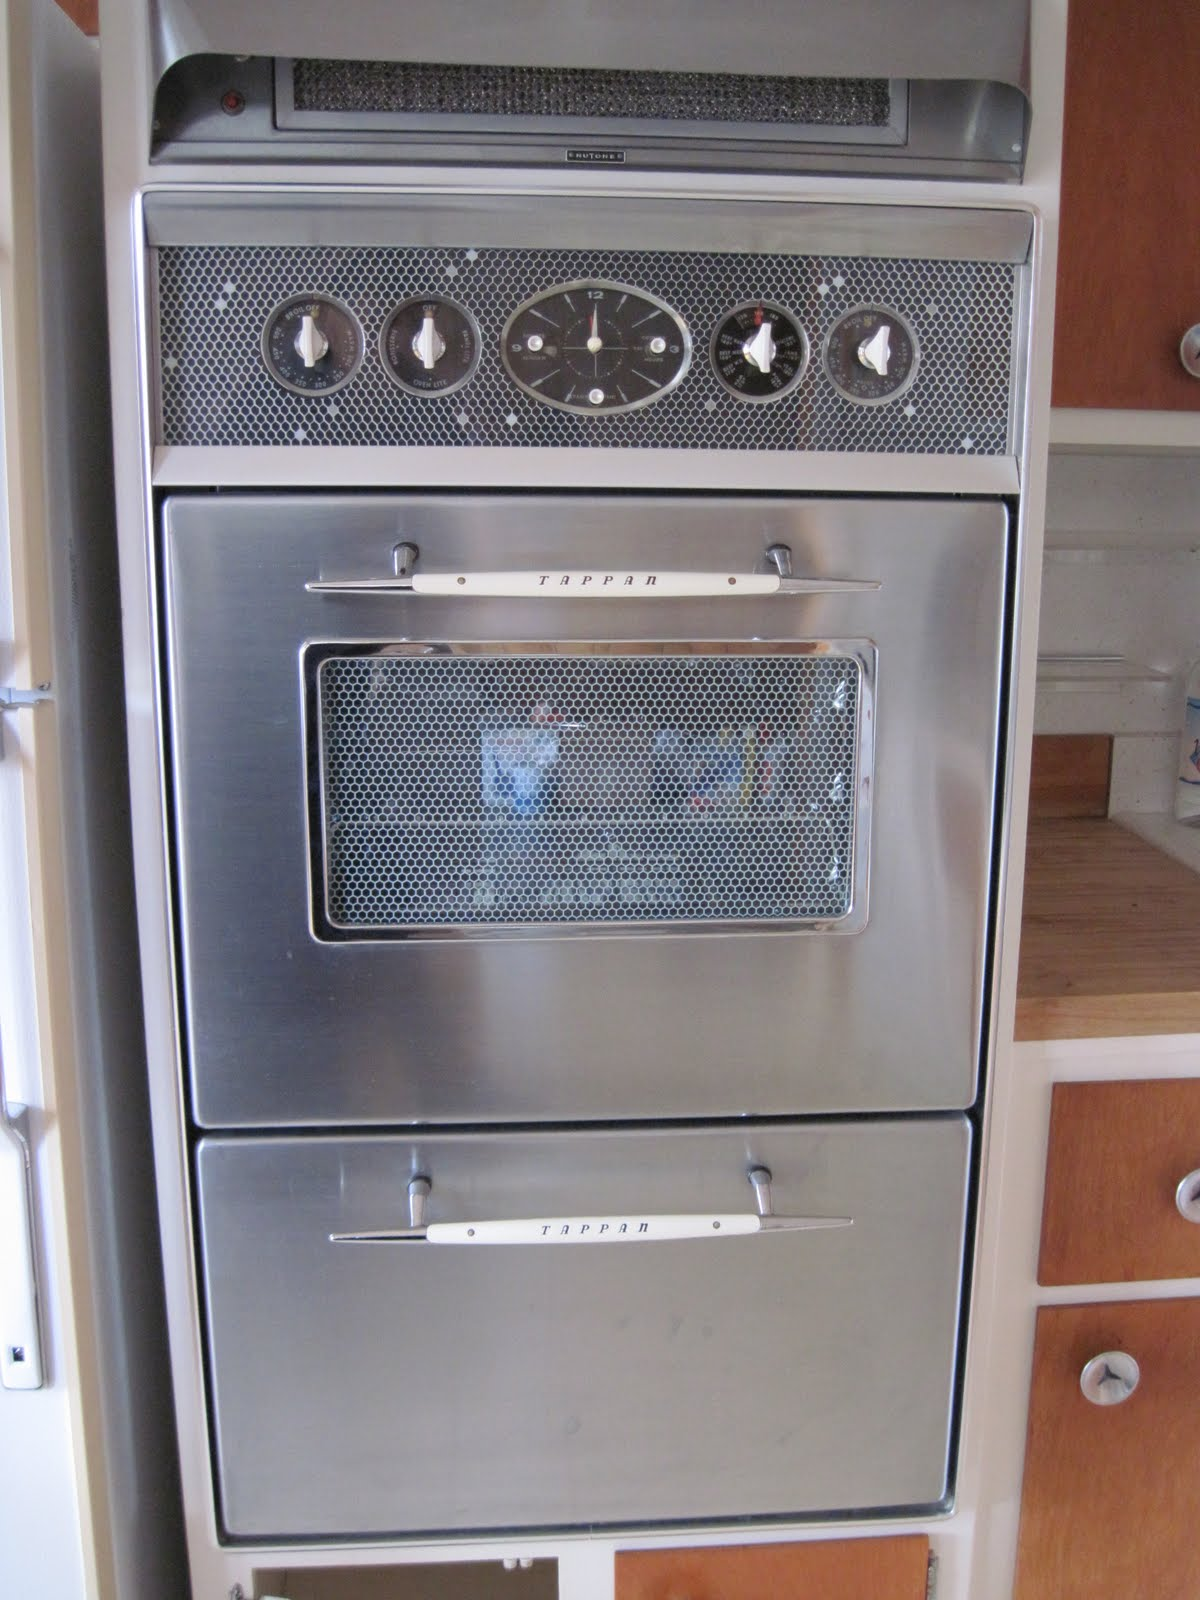 dacor double oven wiring diagram for tappan wall oven manual bing images dacor double wall oven wiring schematic for